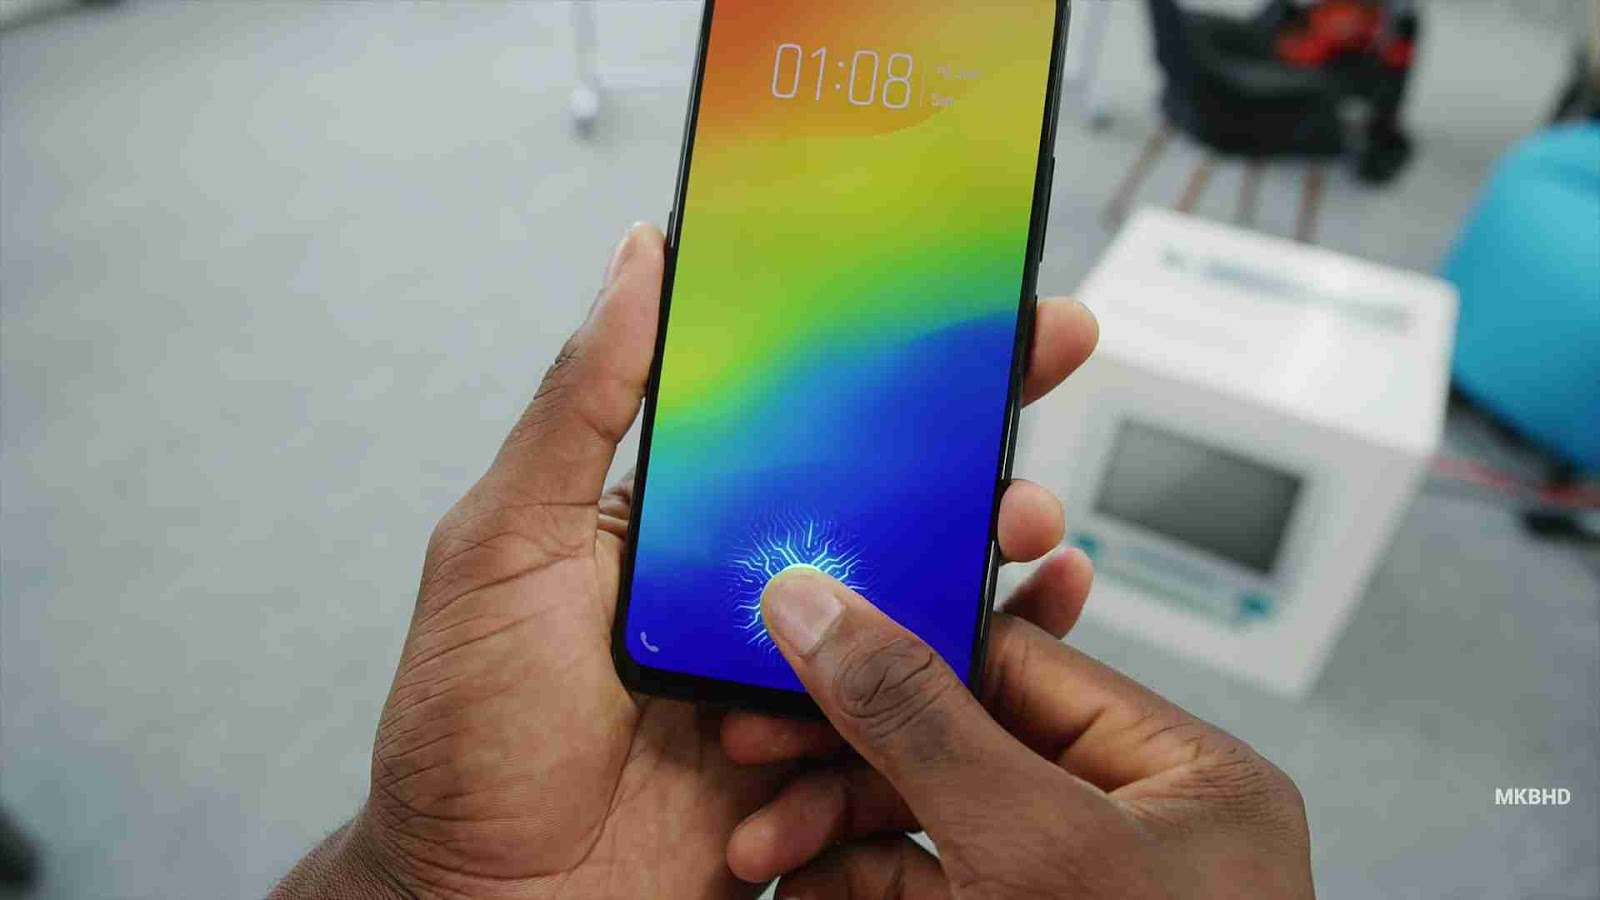 The Vivo Nex S Smart Phone